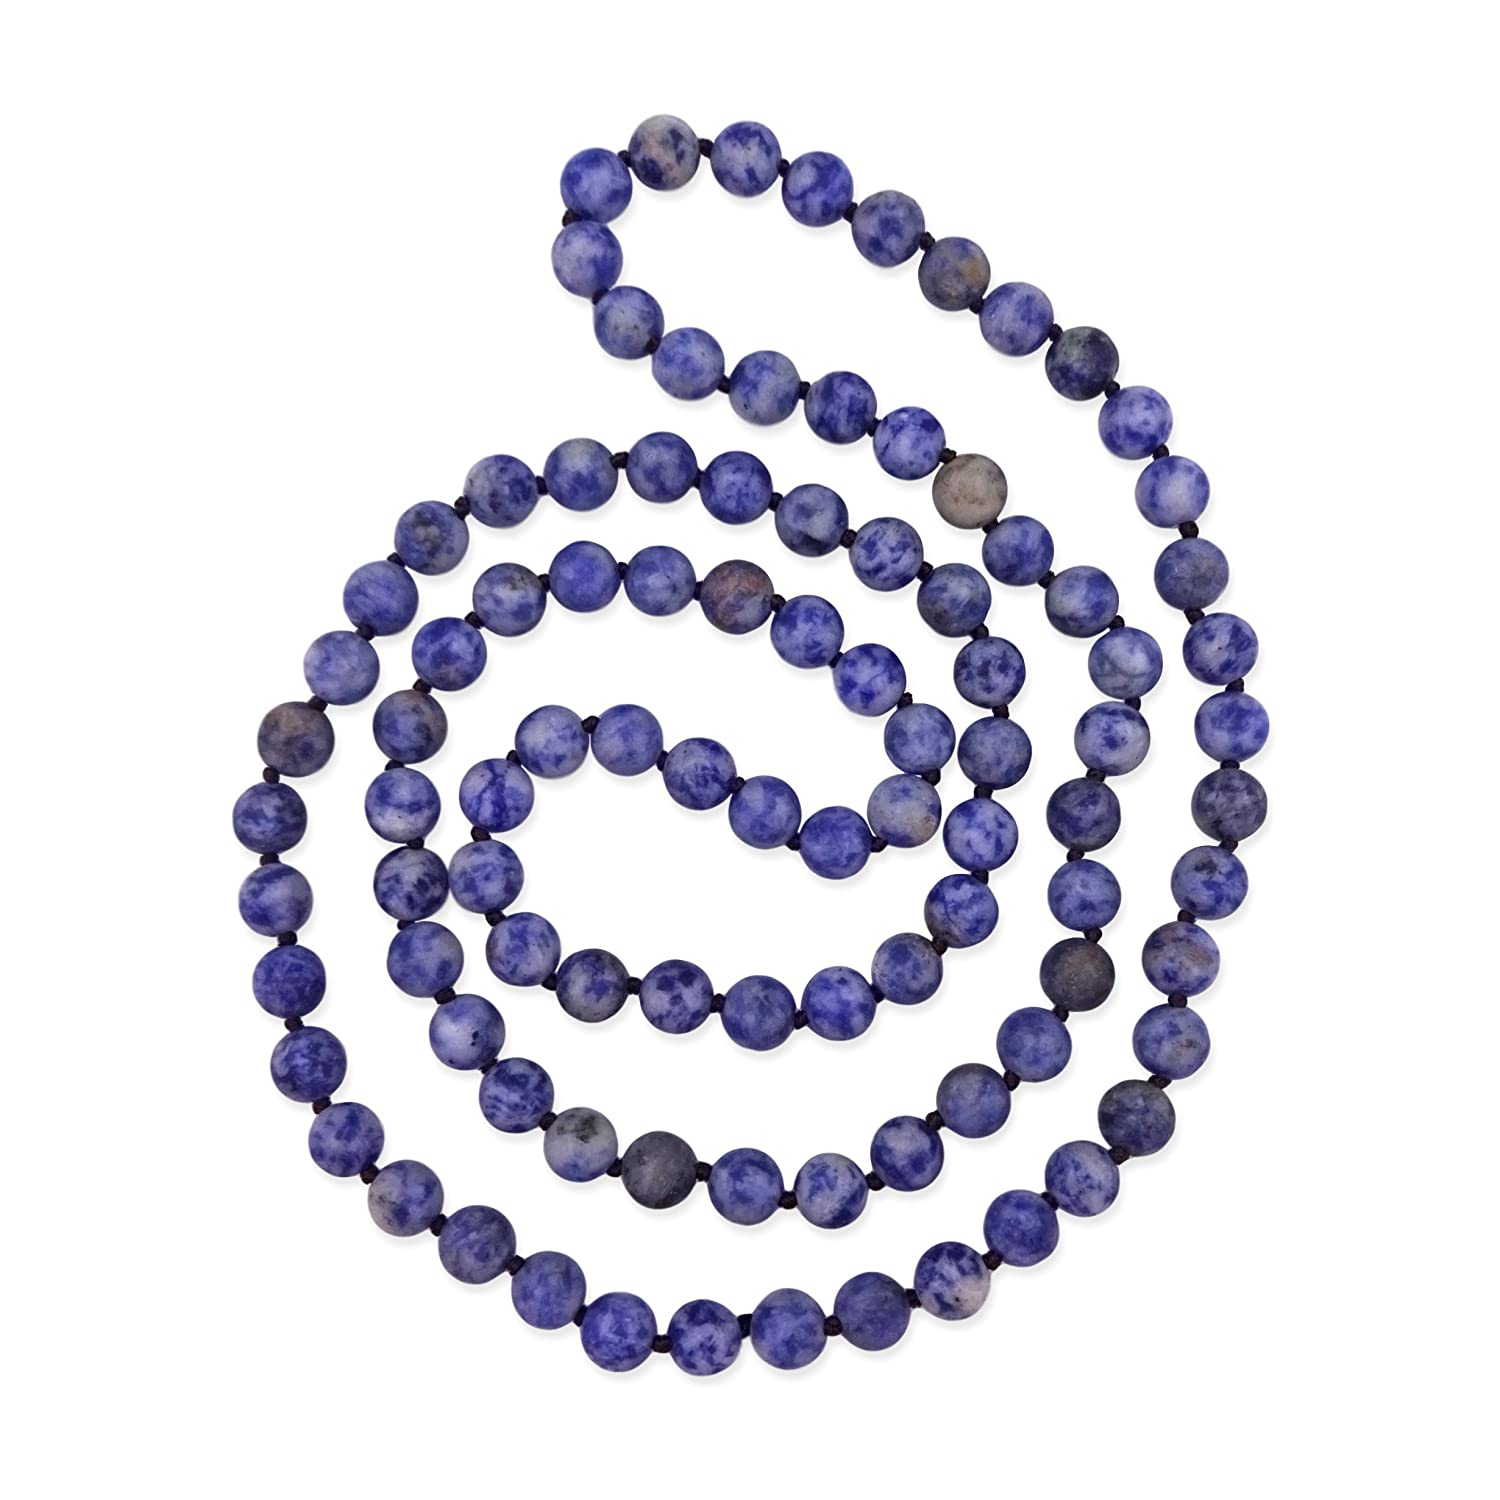 MGR 36 Inch 8MM Matte Fininsh Genuine Semi-Precious Stone Endless Infinity Long Beaded Strand Necklace. 8MM Matte Finish Stone